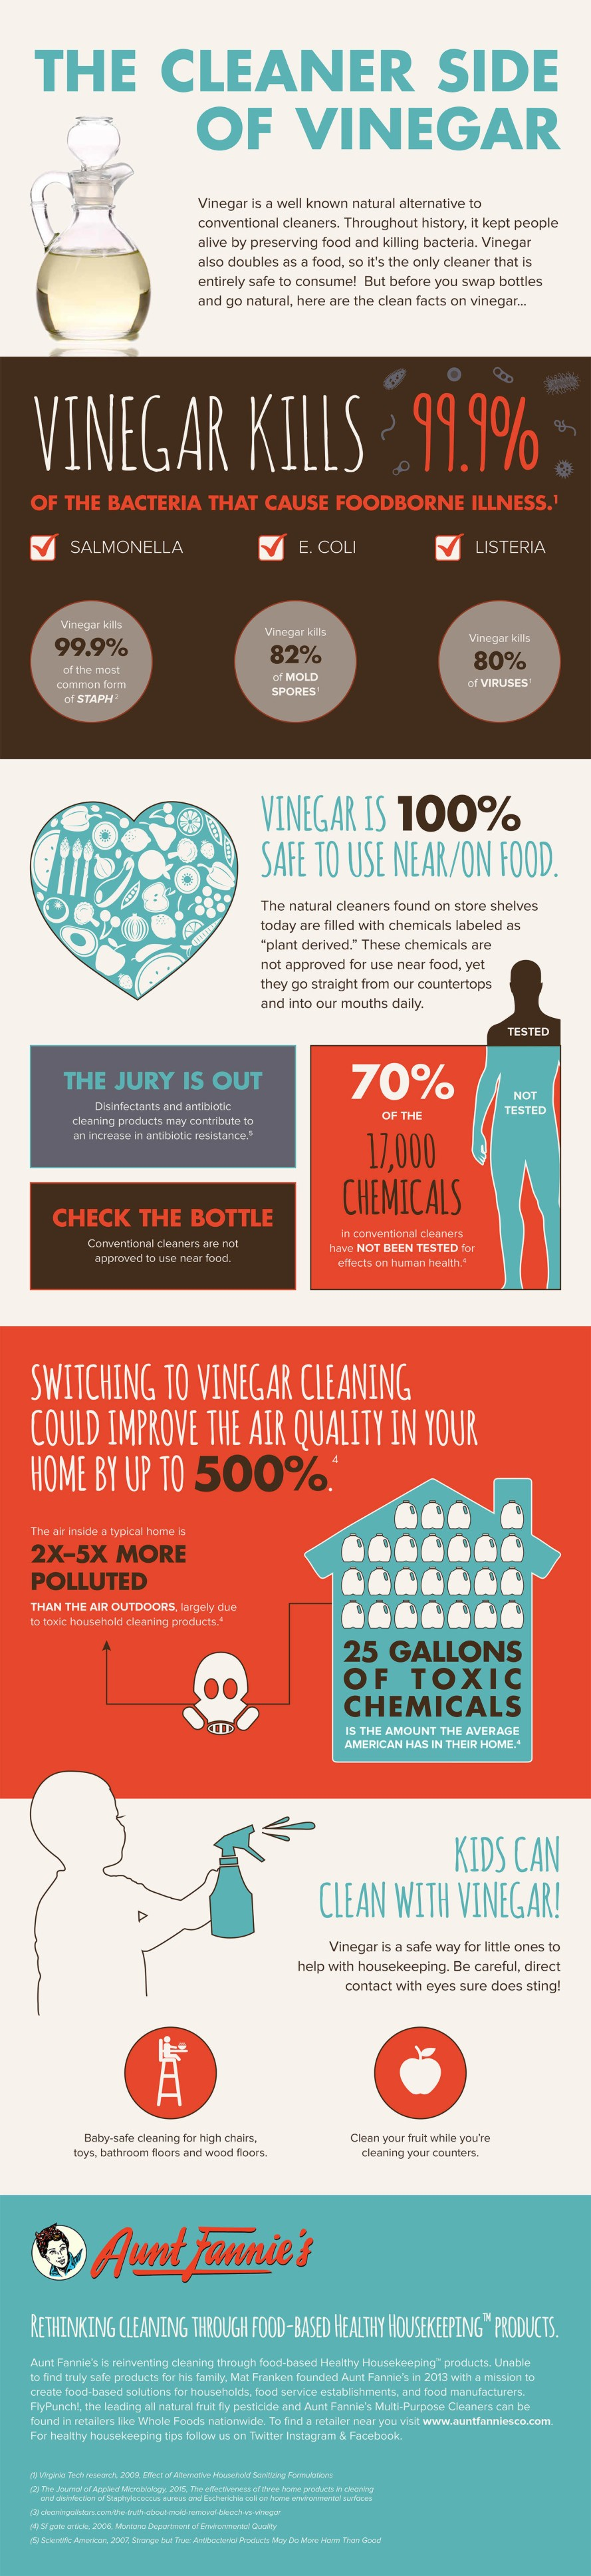 the-cleaner-side-of-vinegar-infographic-889x3872.jpg